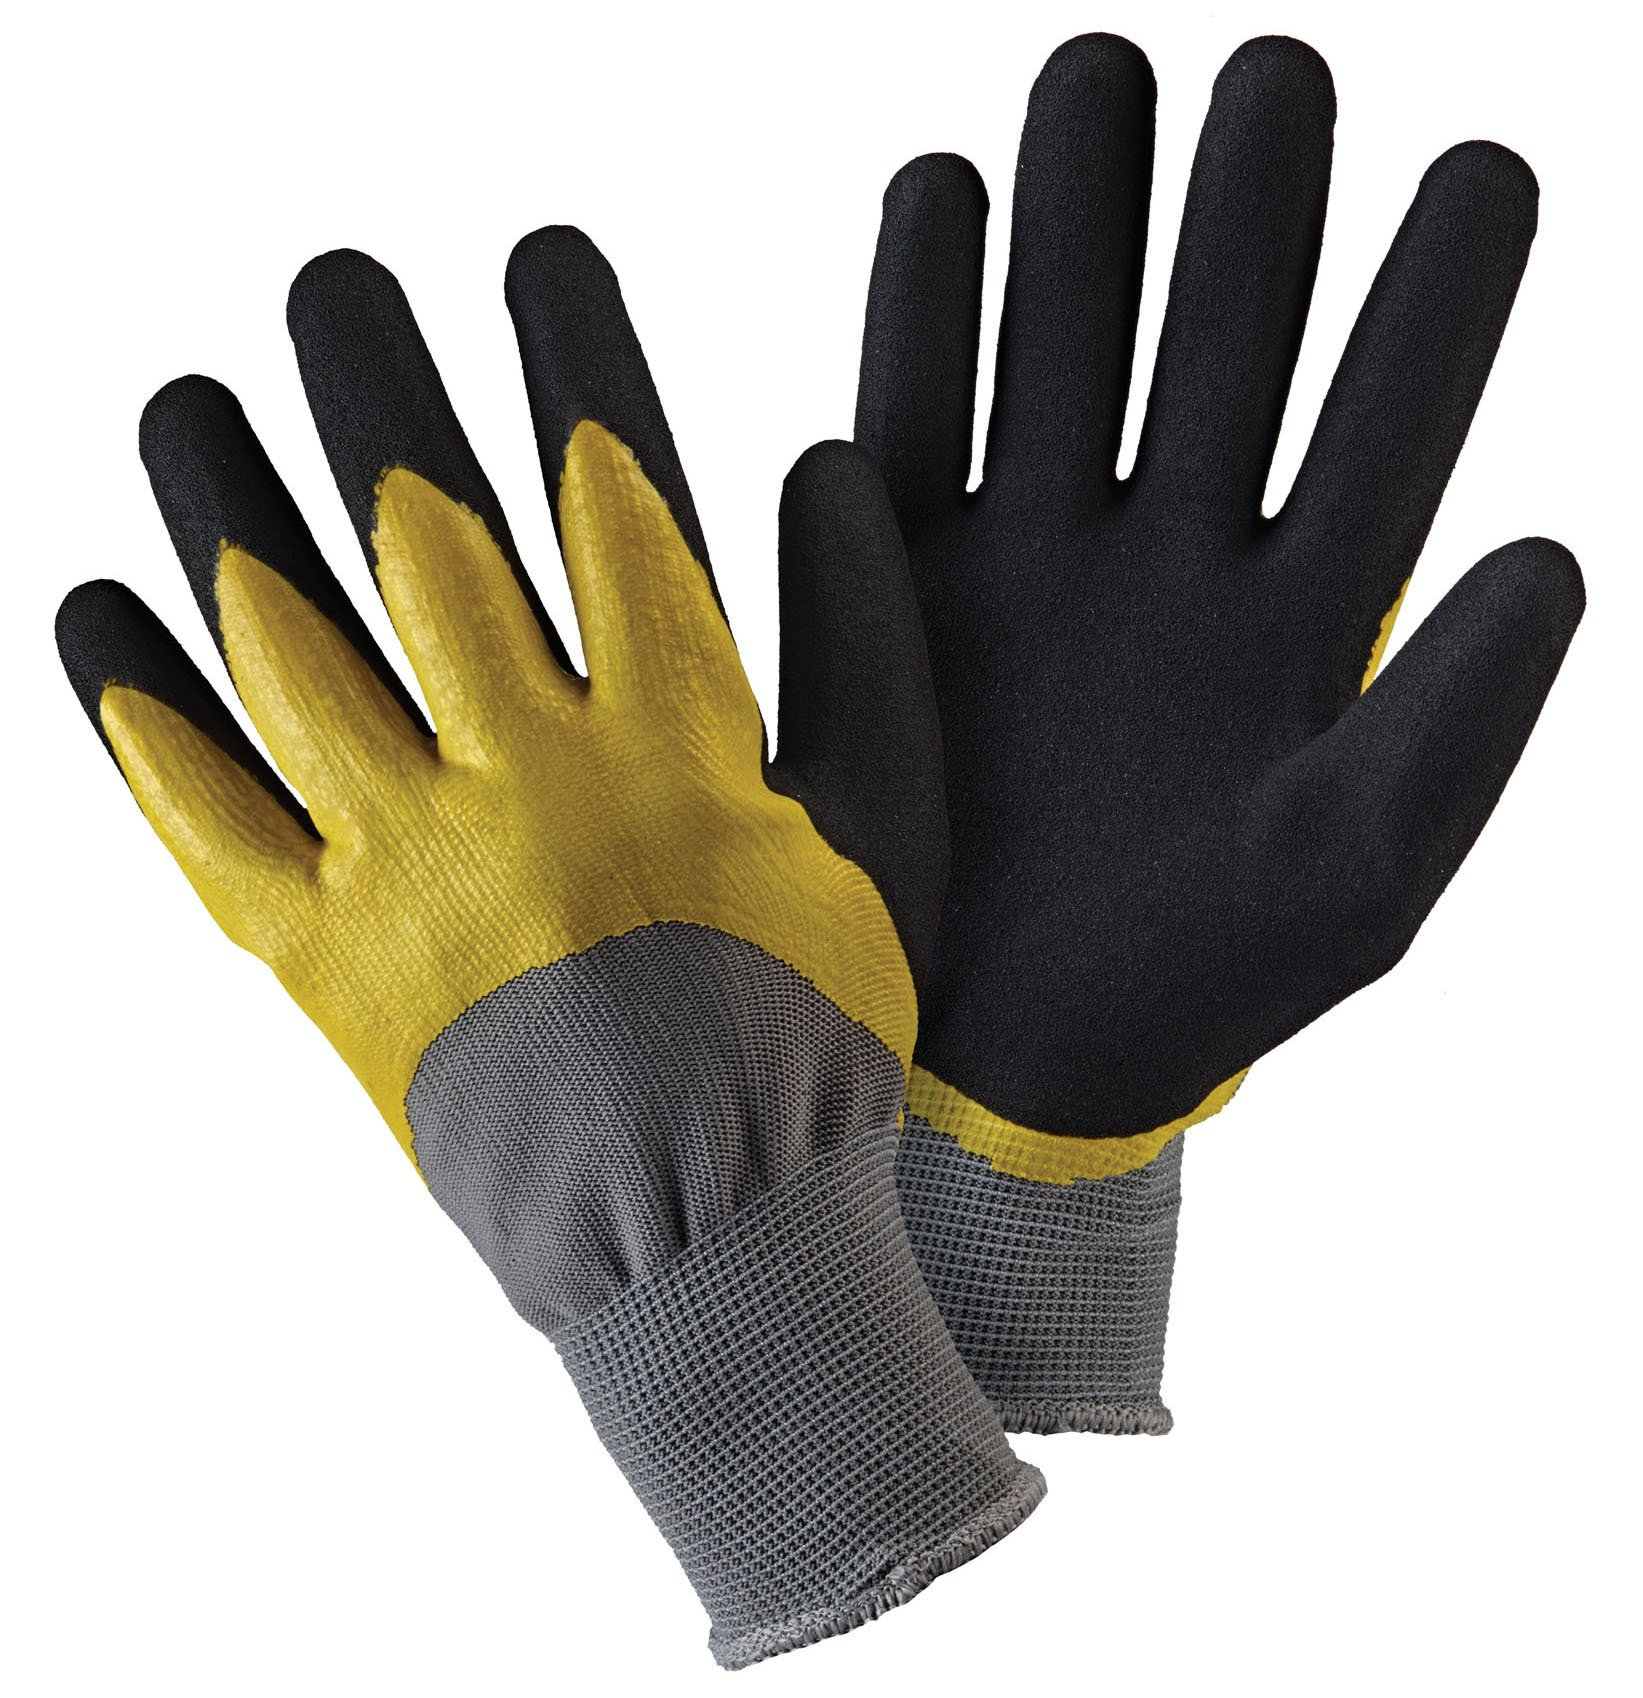 Briers Double Dip Gardening Gloves Large Black Yellow At Barnitts Online Store Uk Barnitts